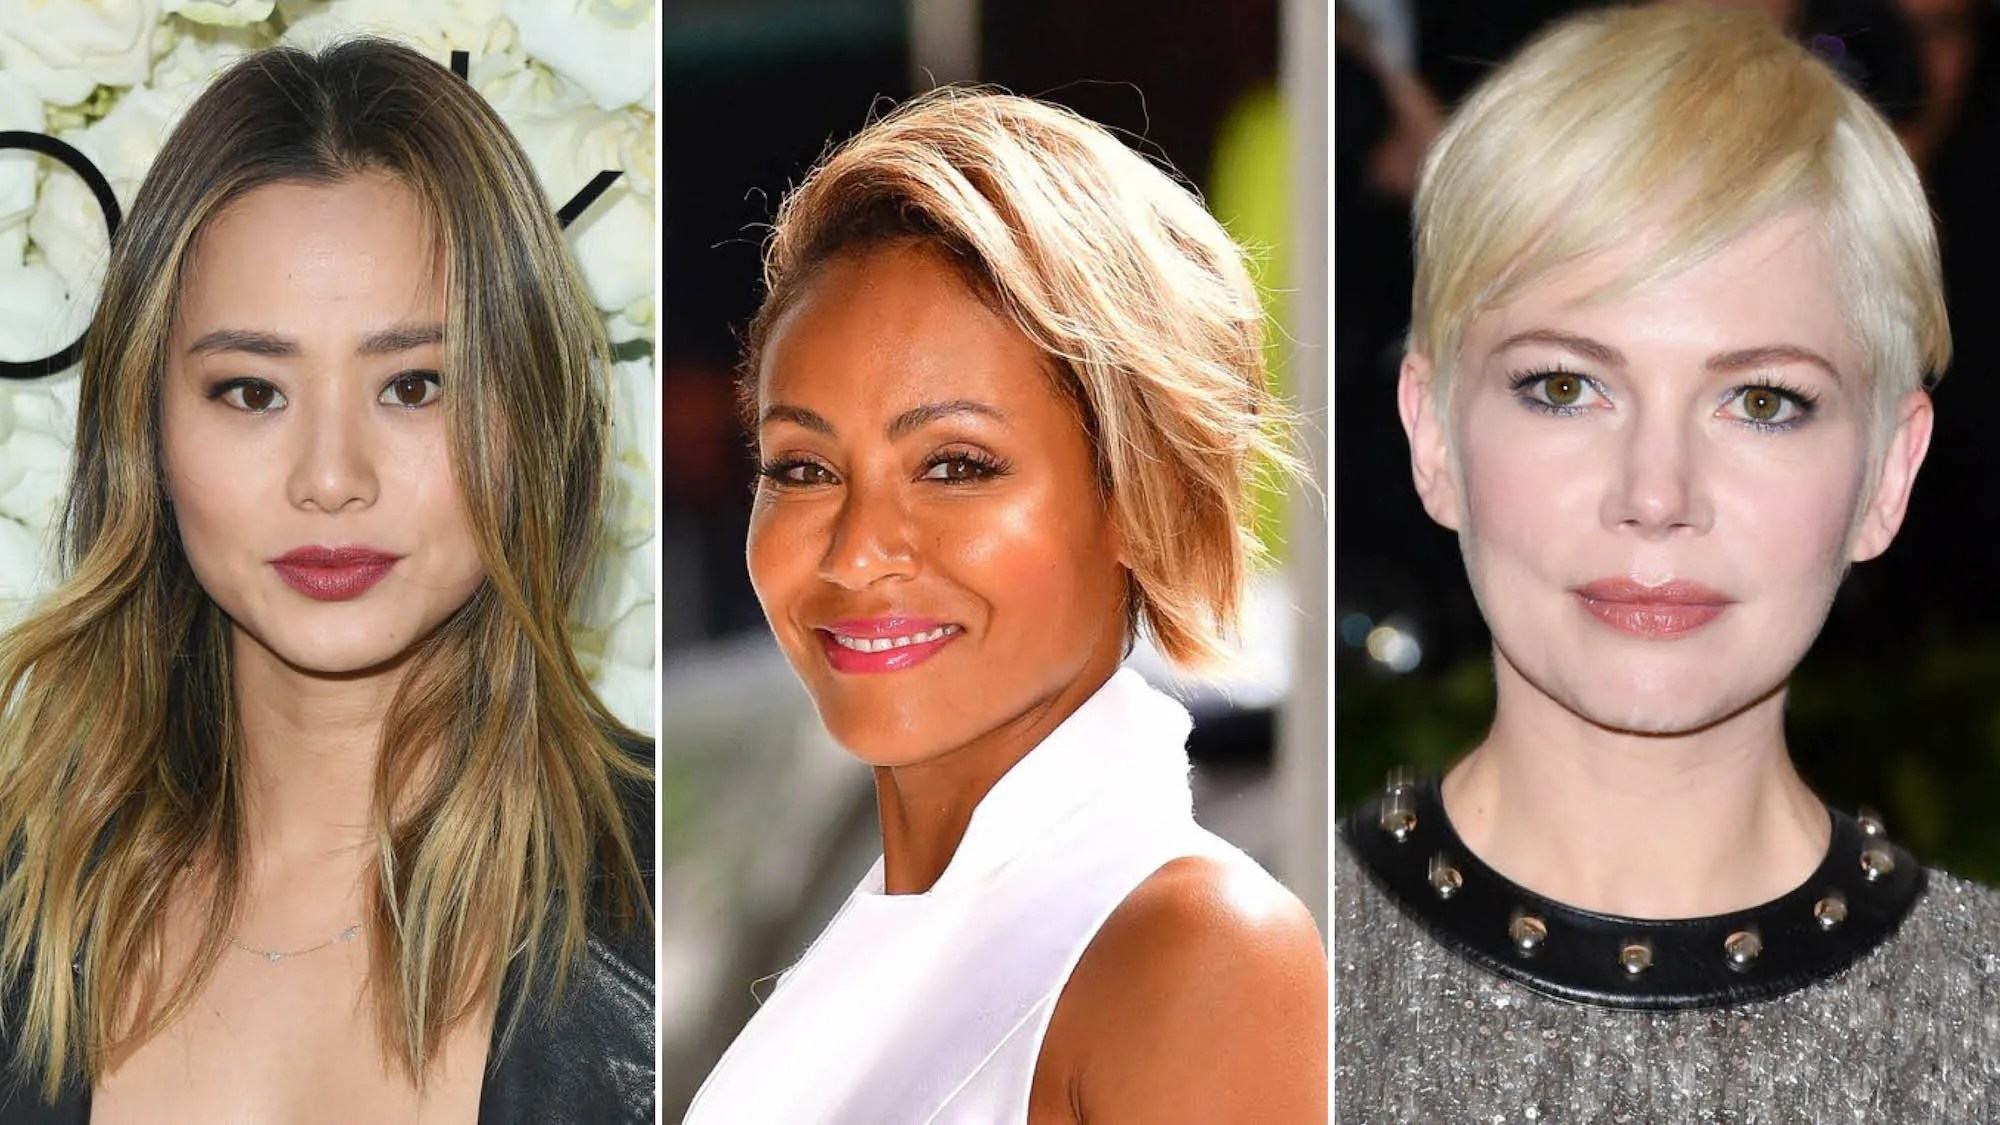 We may earn a commission through links on our site. The 8 Best Haircuts For Thin Hair That Make It Look Way Thicker Allure